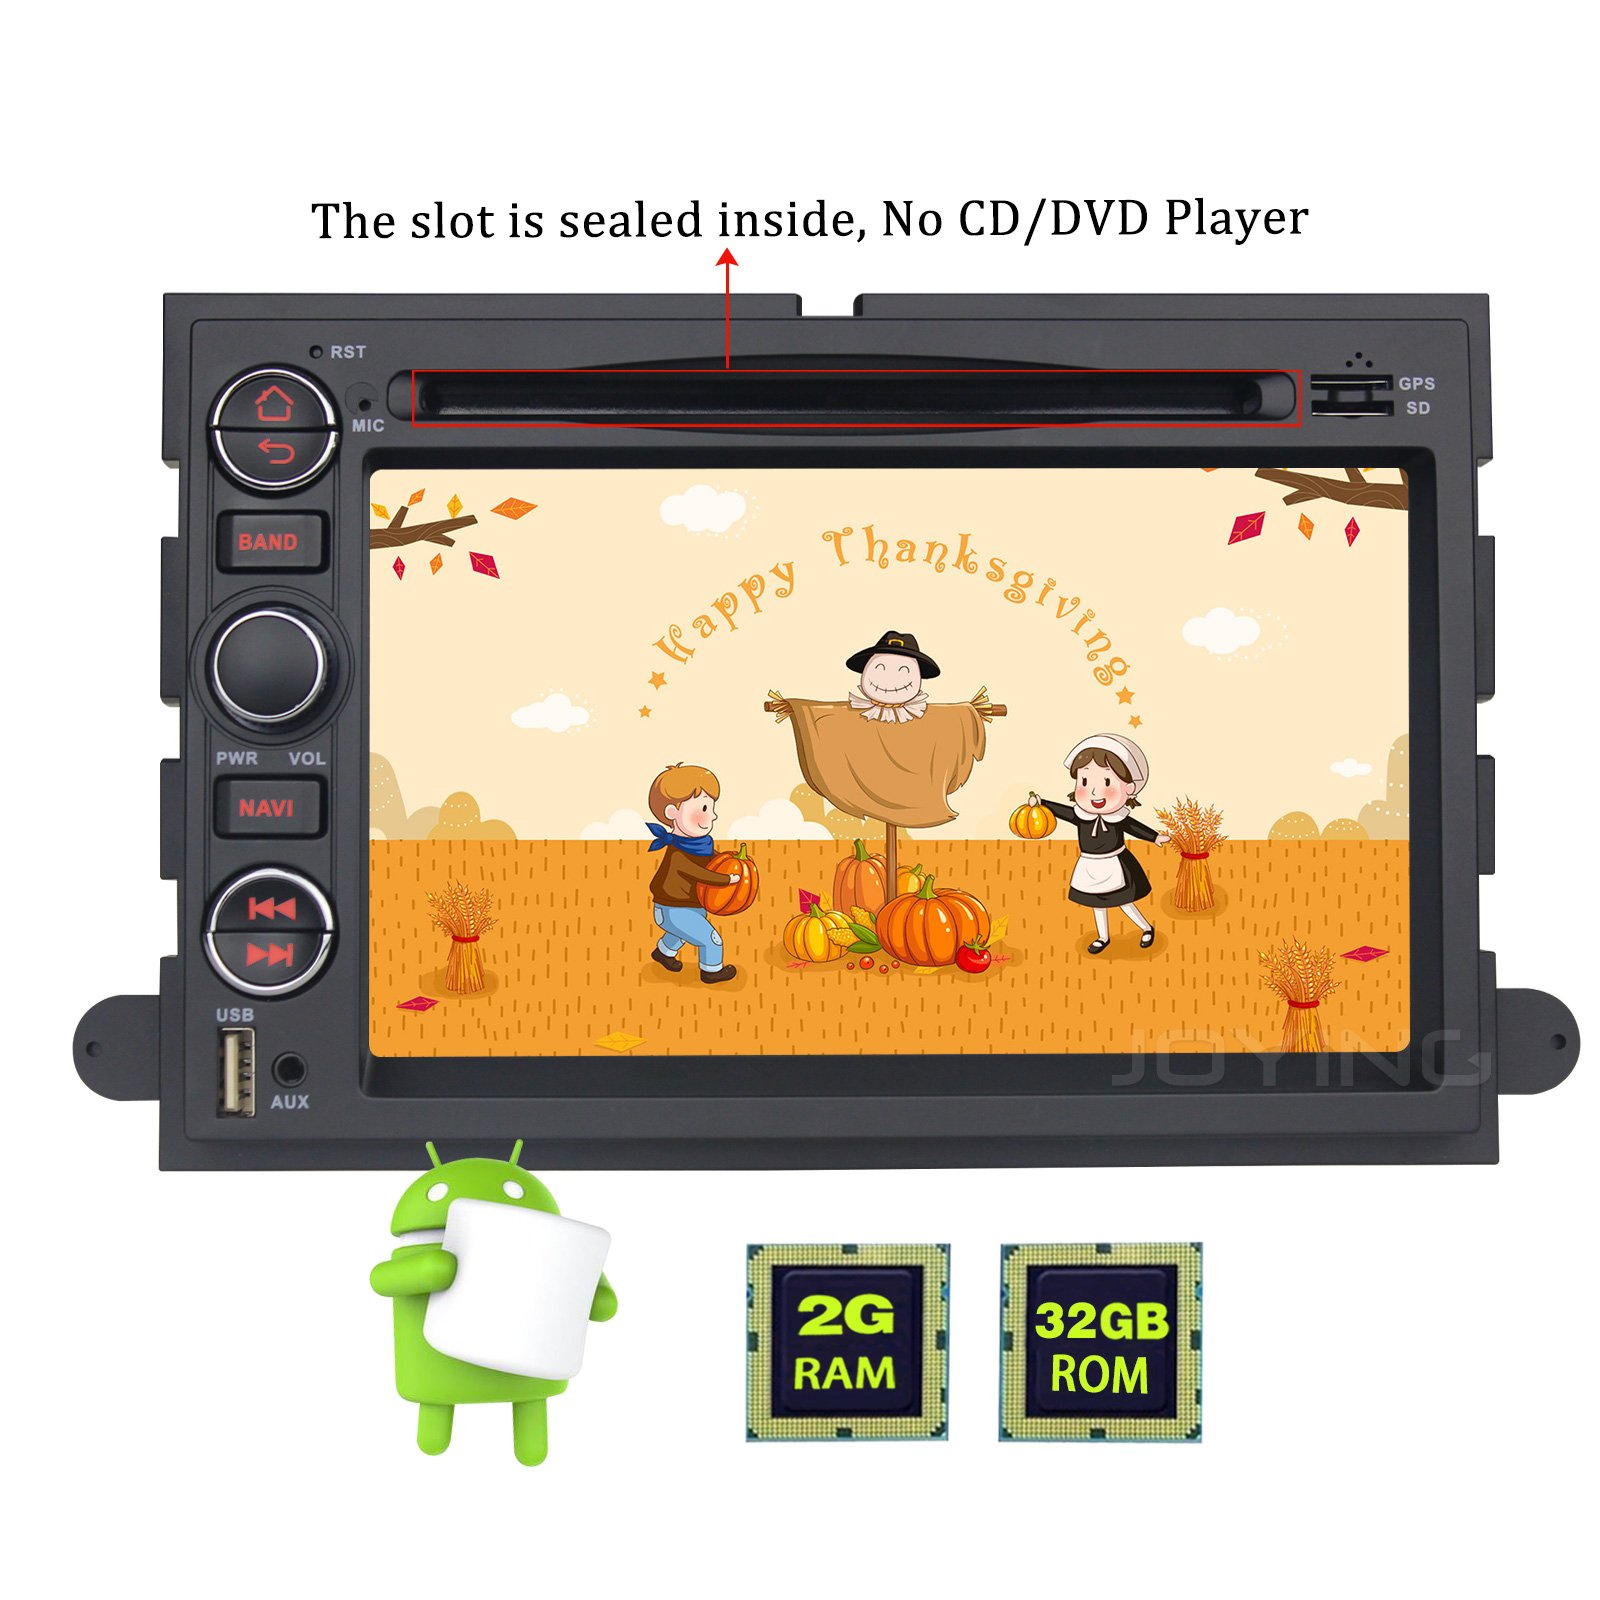 JOYING for Ford Android 6.0 Car Stereo 2004-2008 F-150 2005-2012 F-250 F-350 F-450 F-550 In-Dash Navigation Double 2 Din Head Unit GPS Radio Bluetooth 4.0 by Joying